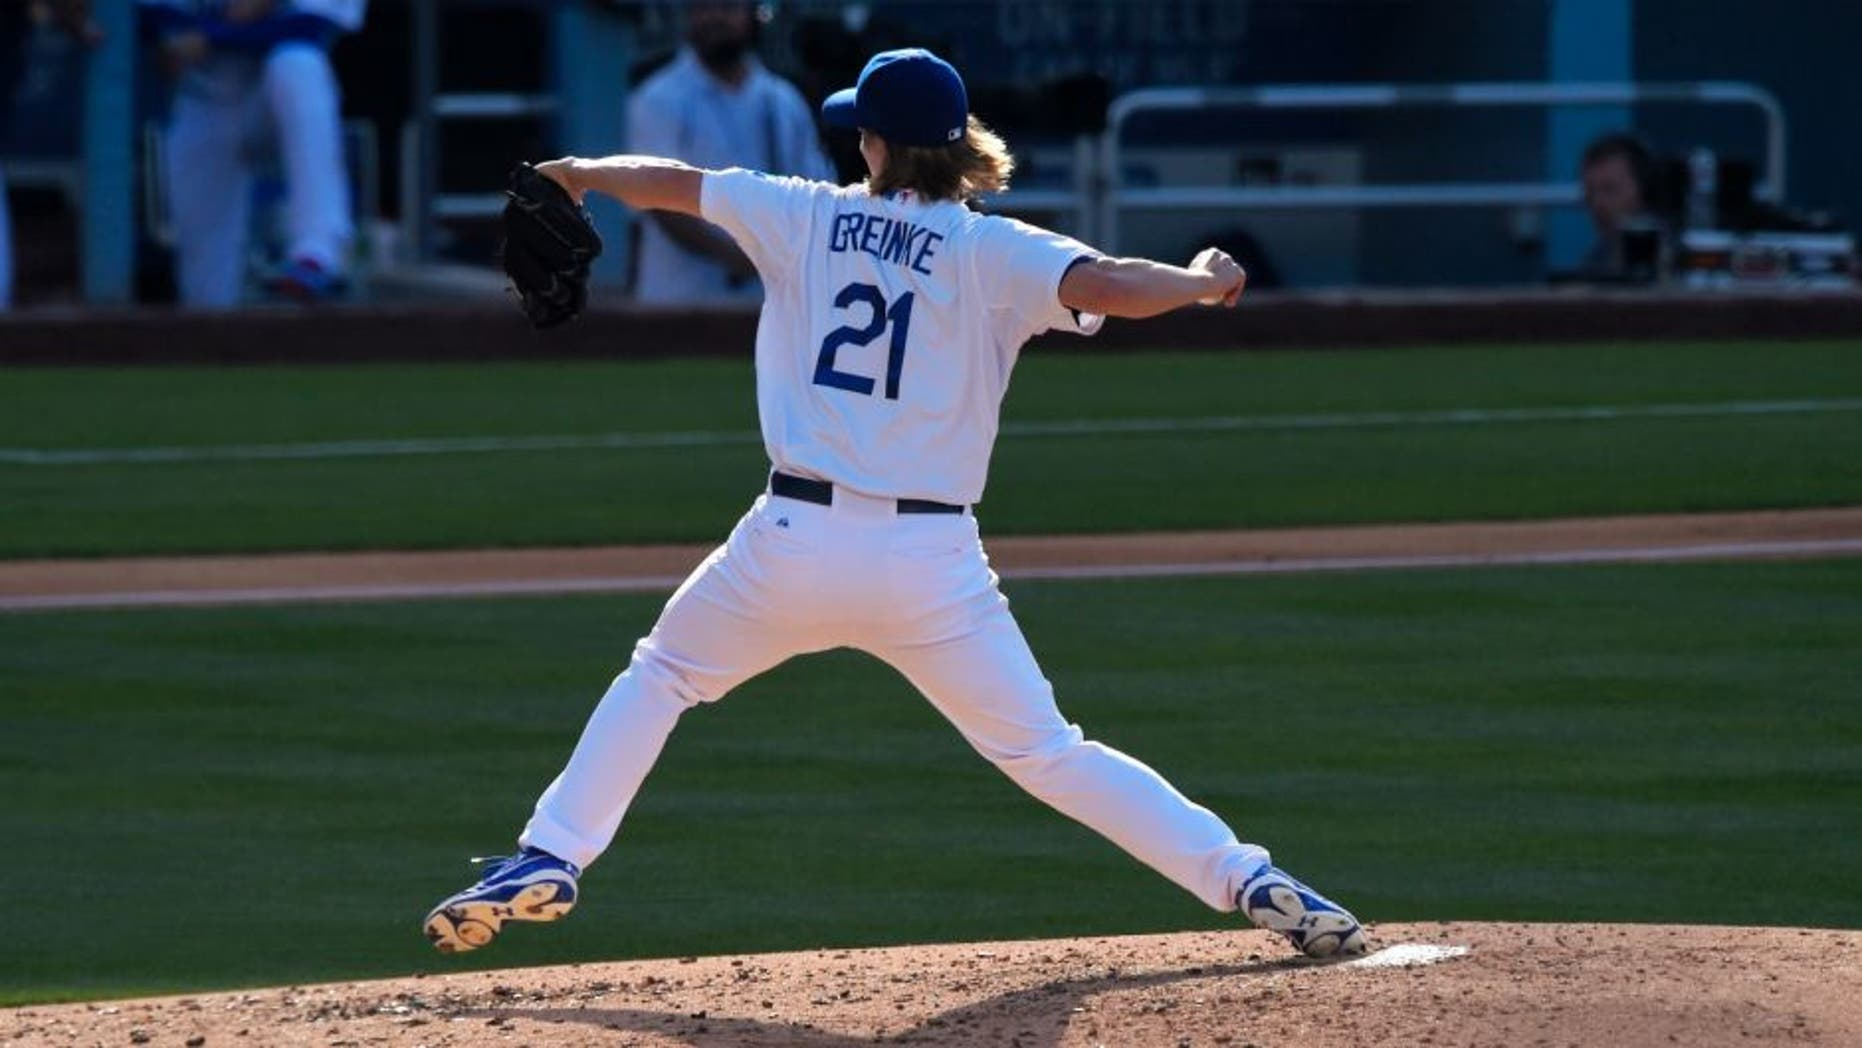 Los Angeles Dodgers starting pitcher Zack Greinke throws to the plate during the third inning of a baseball game against the St. Louis Cardinals, Sunday, June 7, 2015, in Los Angeles. (AP Photo/Mark J. Terrill)